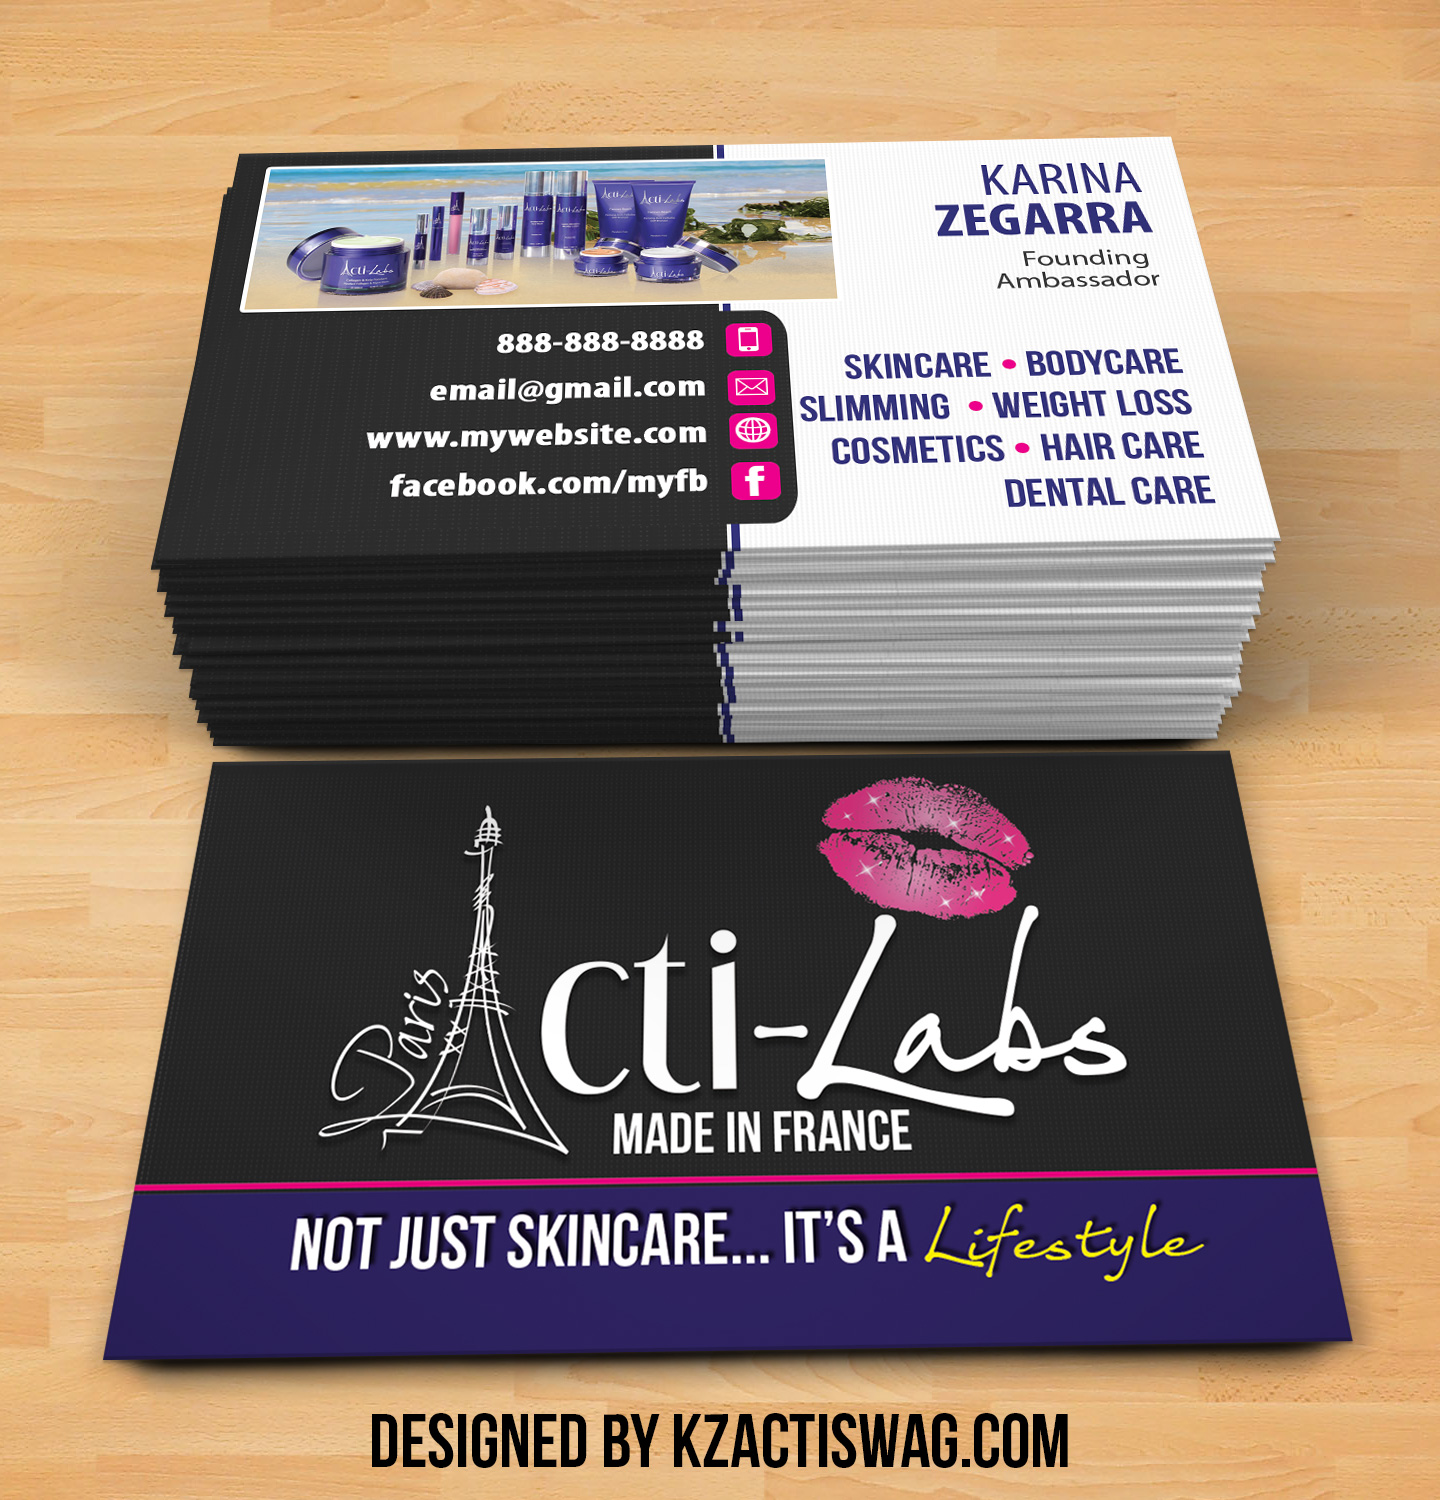 Acti labs business cards 6 kz creative services online store acti labs business cards 6 colourmoves Image collections